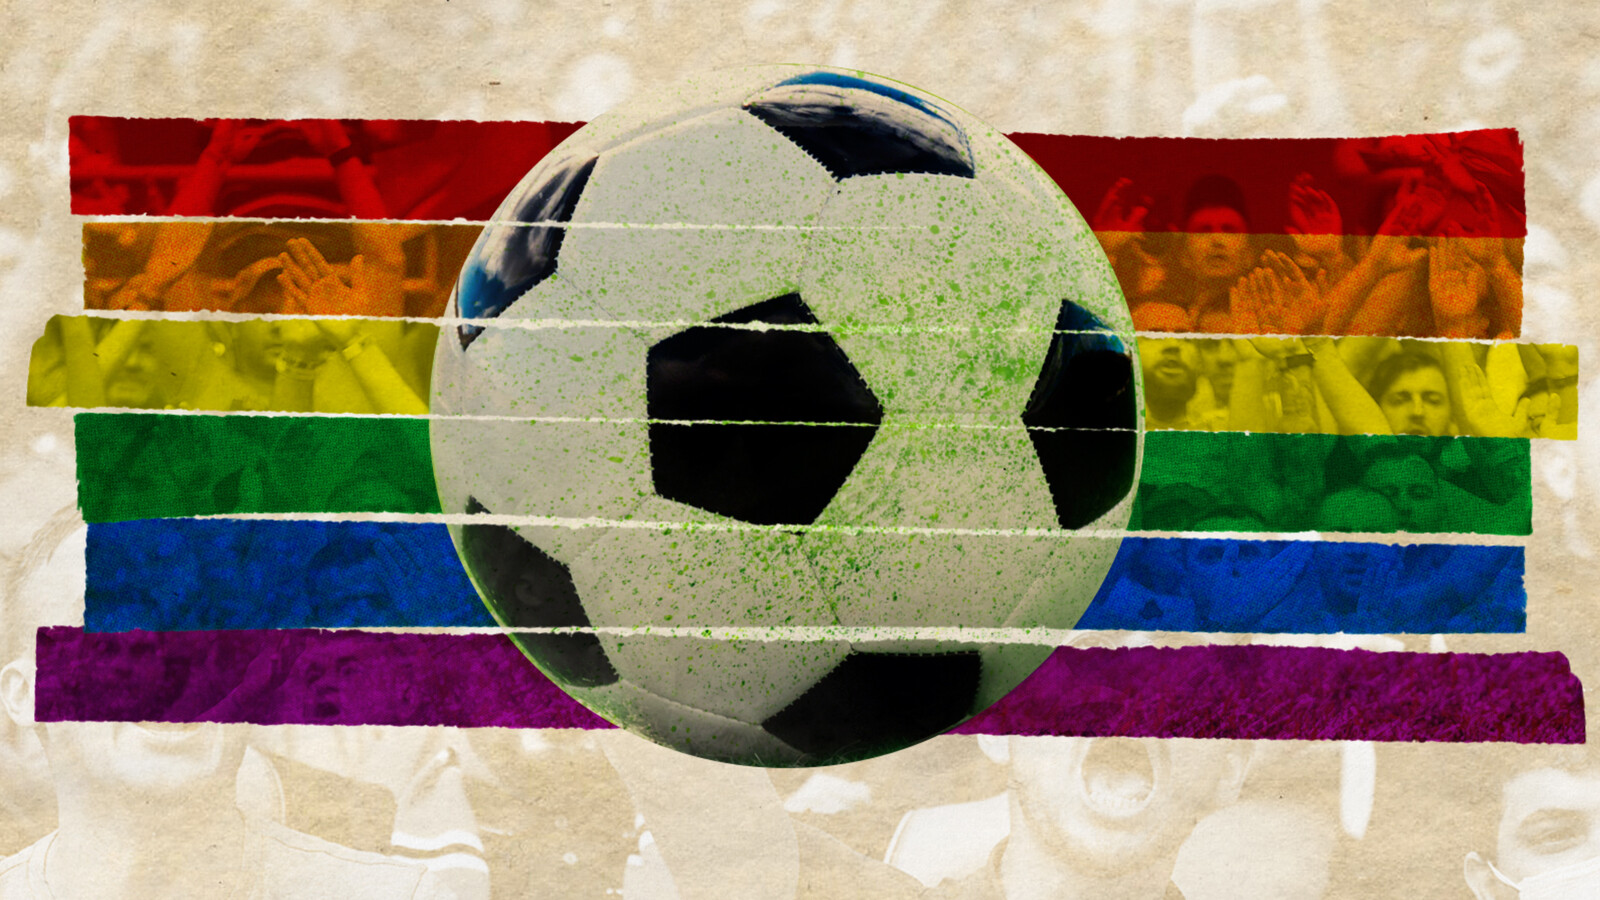 Does the footballing world really care about kicking homophobia out?